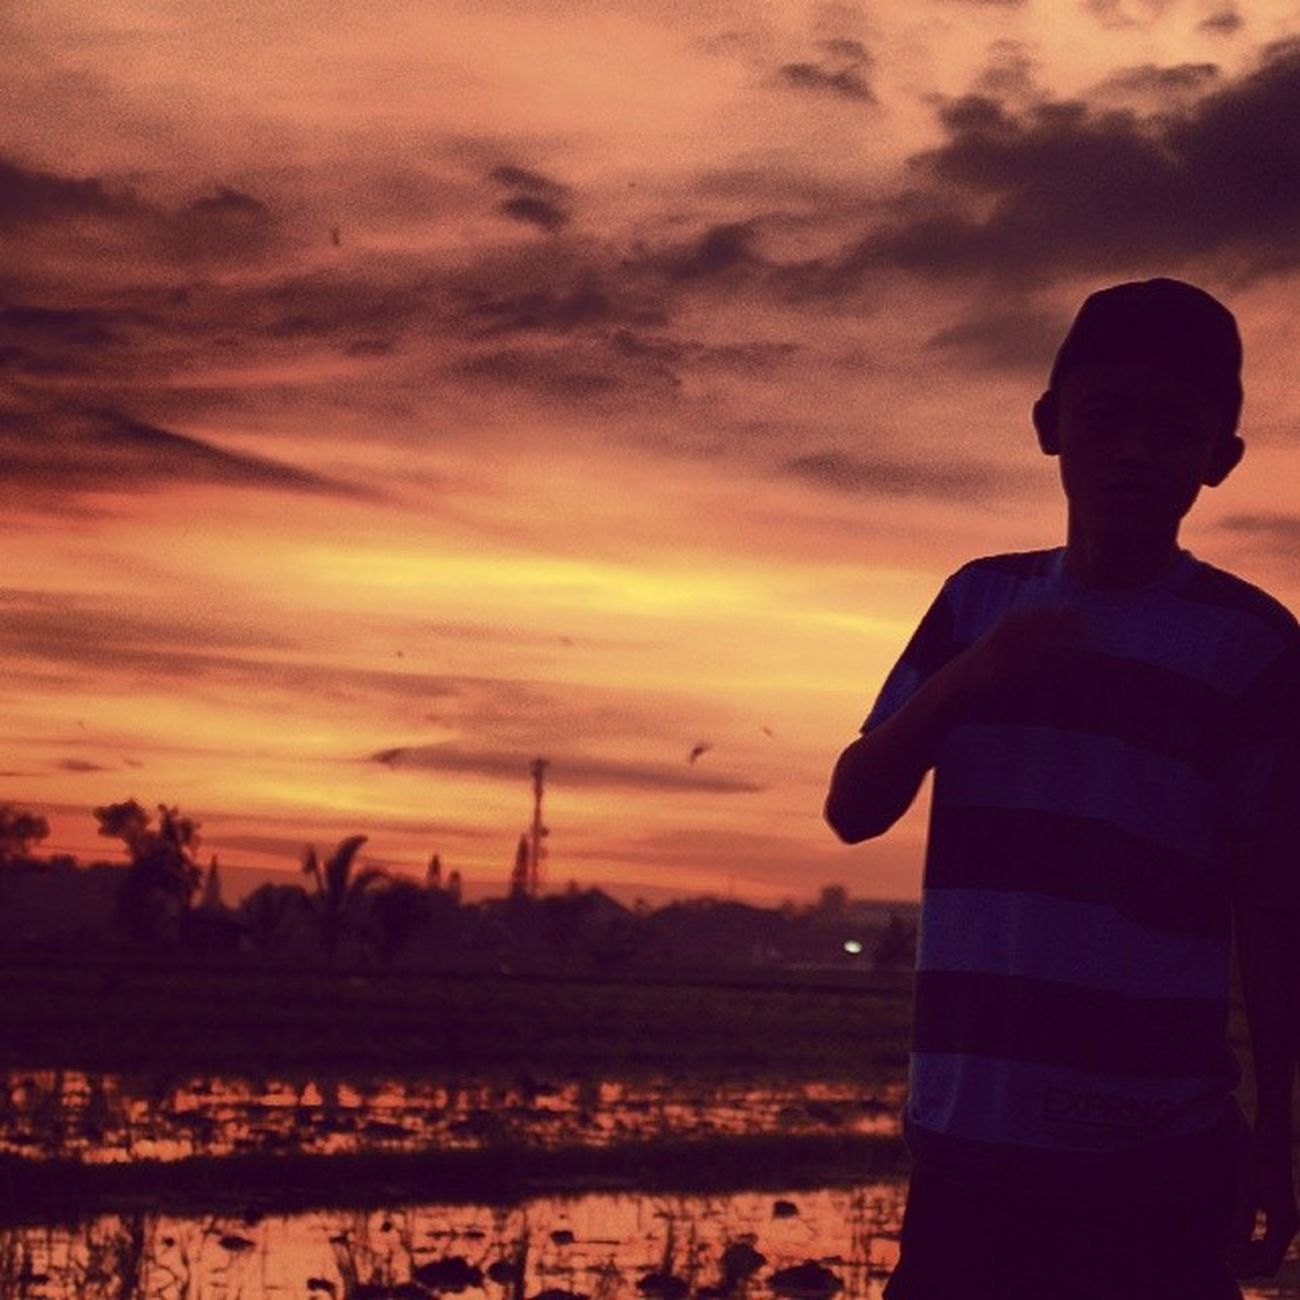 Sunset Tanah Anarki